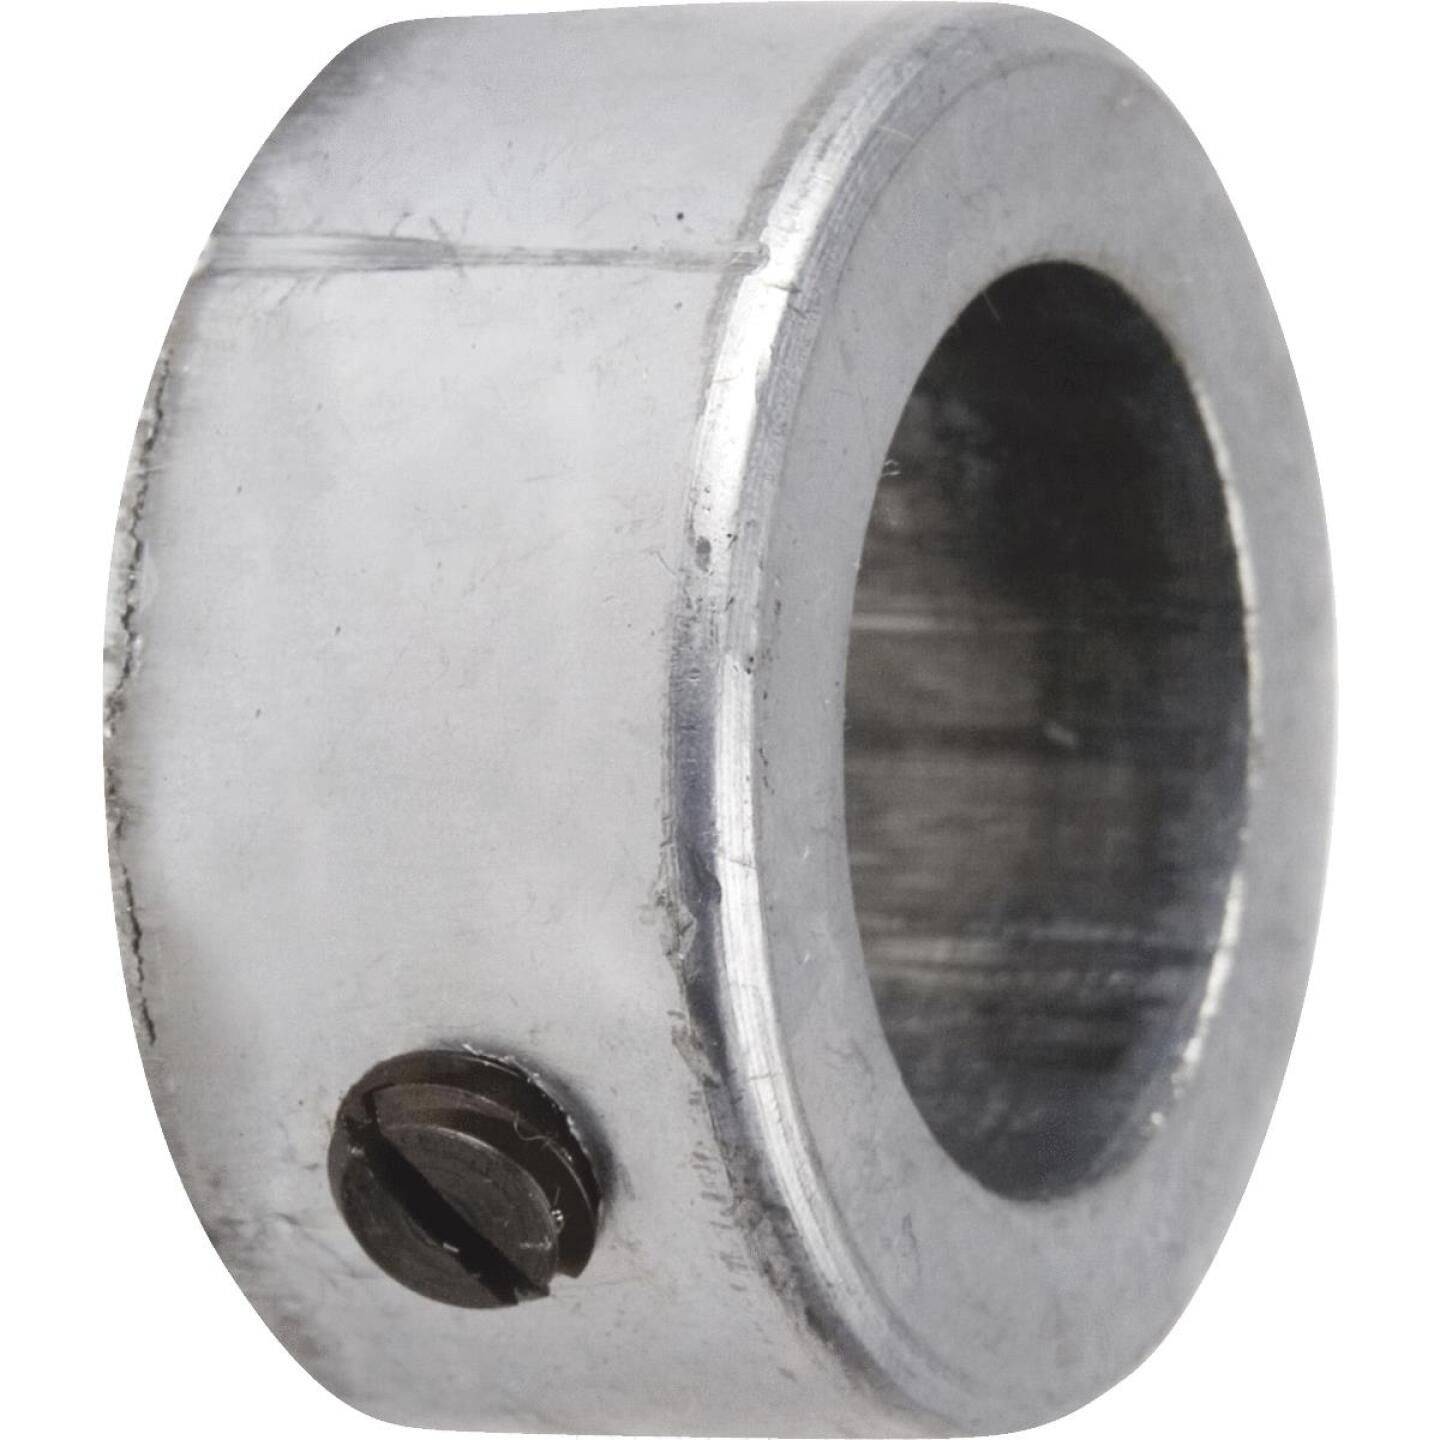 Chicago Die Casting 1/4 In. Shaft Collar Image 1